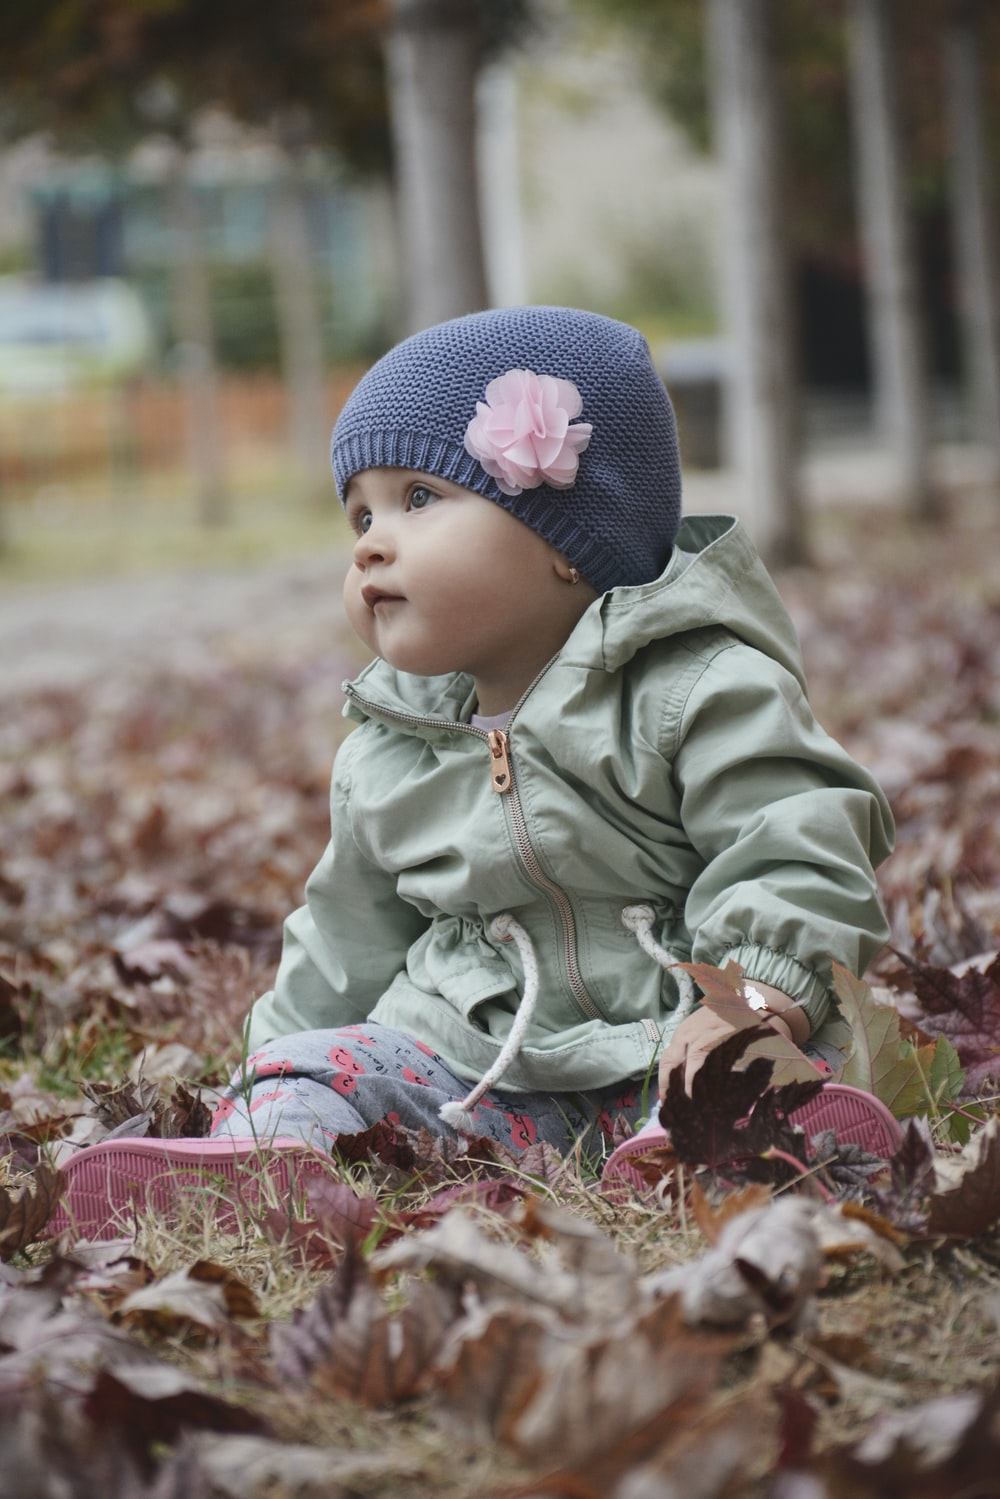 baby wearing gray beanie cap sitting surrounded by dried leaves